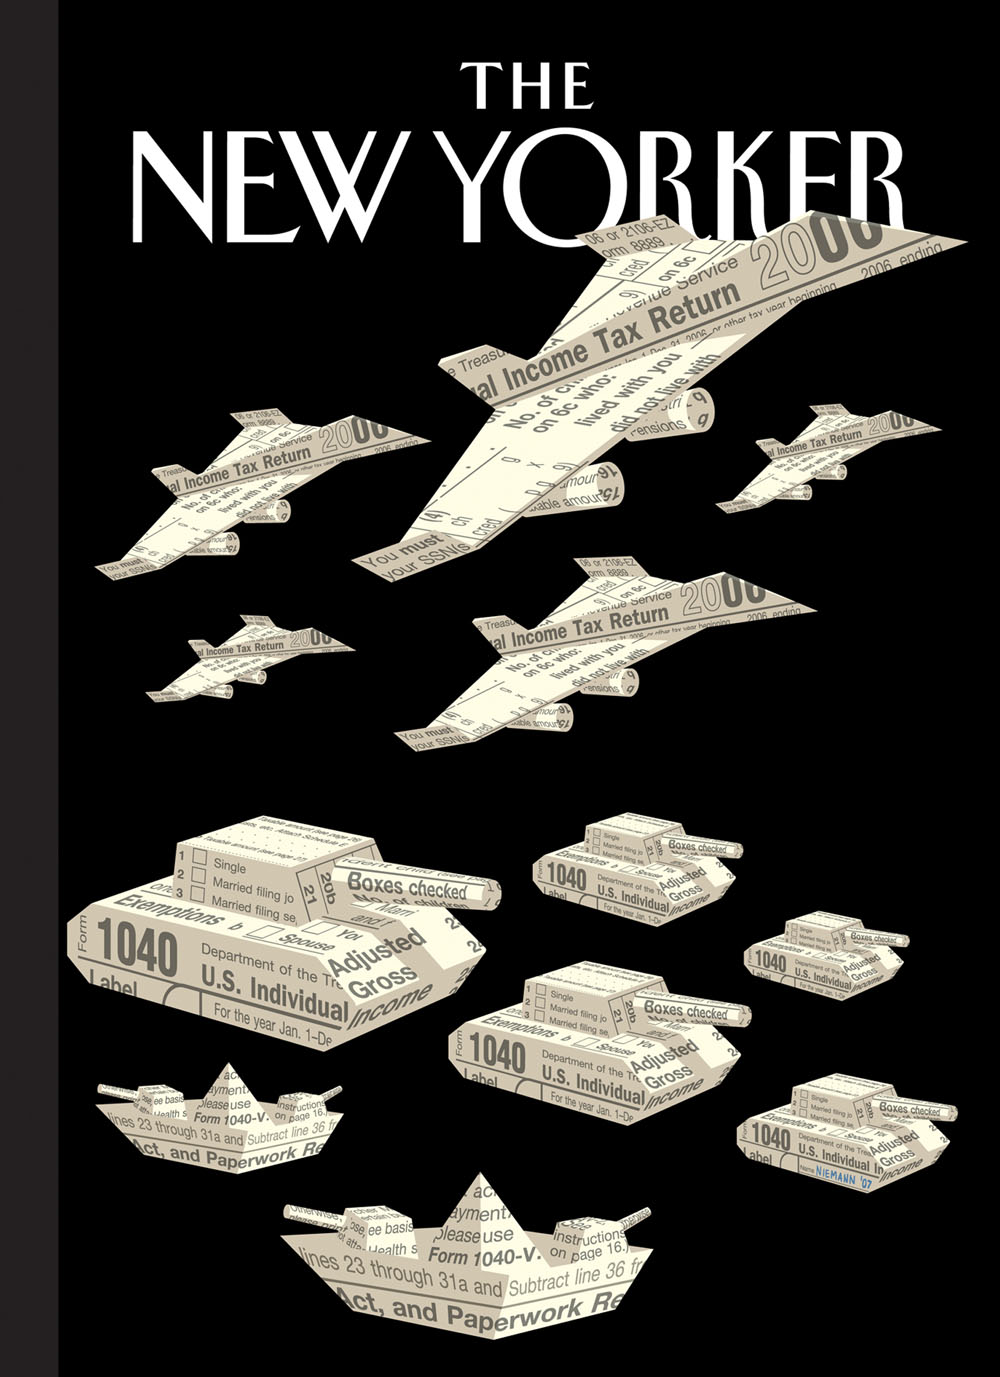 Christoph Niemann (*1970), Cover Illustration The New Yorker, 2007, Print, 20 x 27,5 cm,  © Christoph Niemann